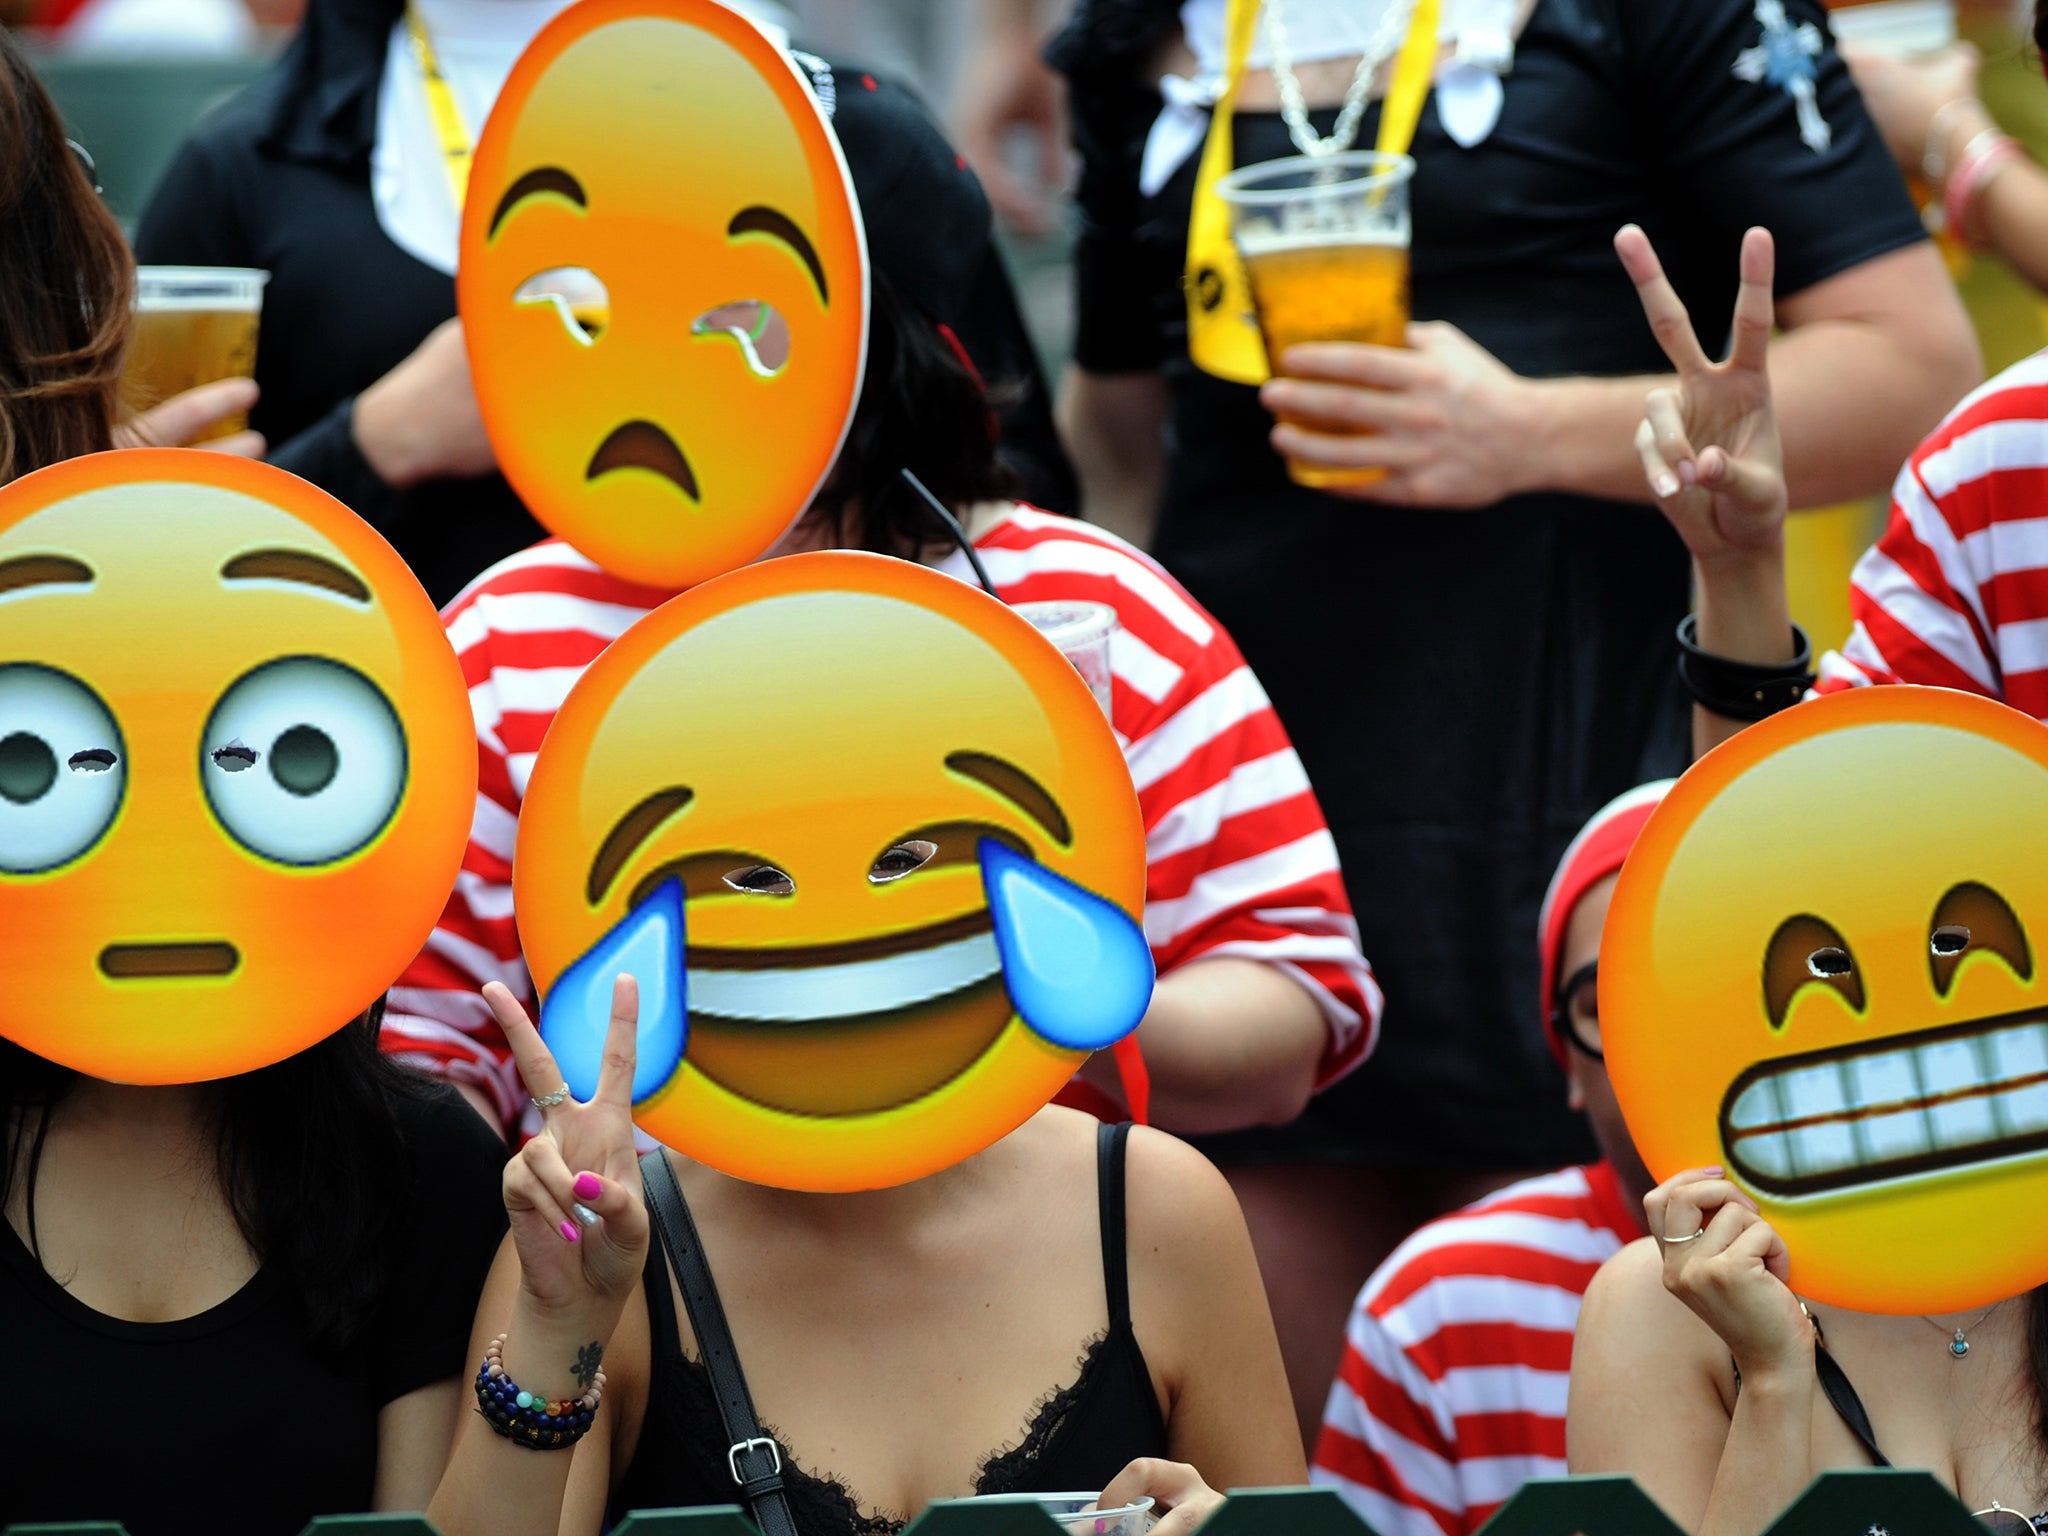 Emojis now more popular than acronyms, says Instagram | The